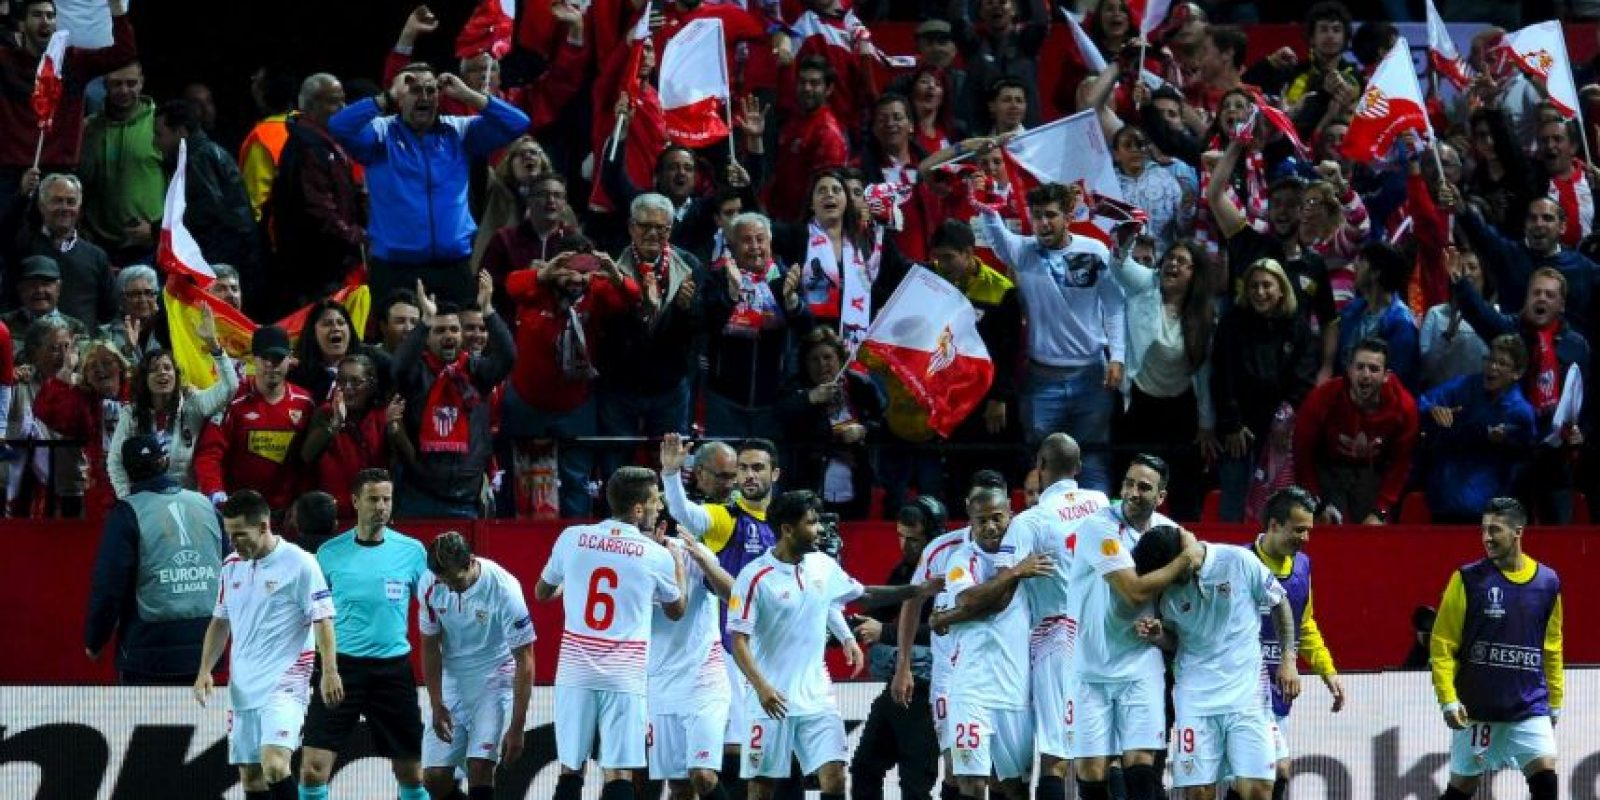 Sevilla de nuevo estára en la final de la Europa League Foto: Getty Images